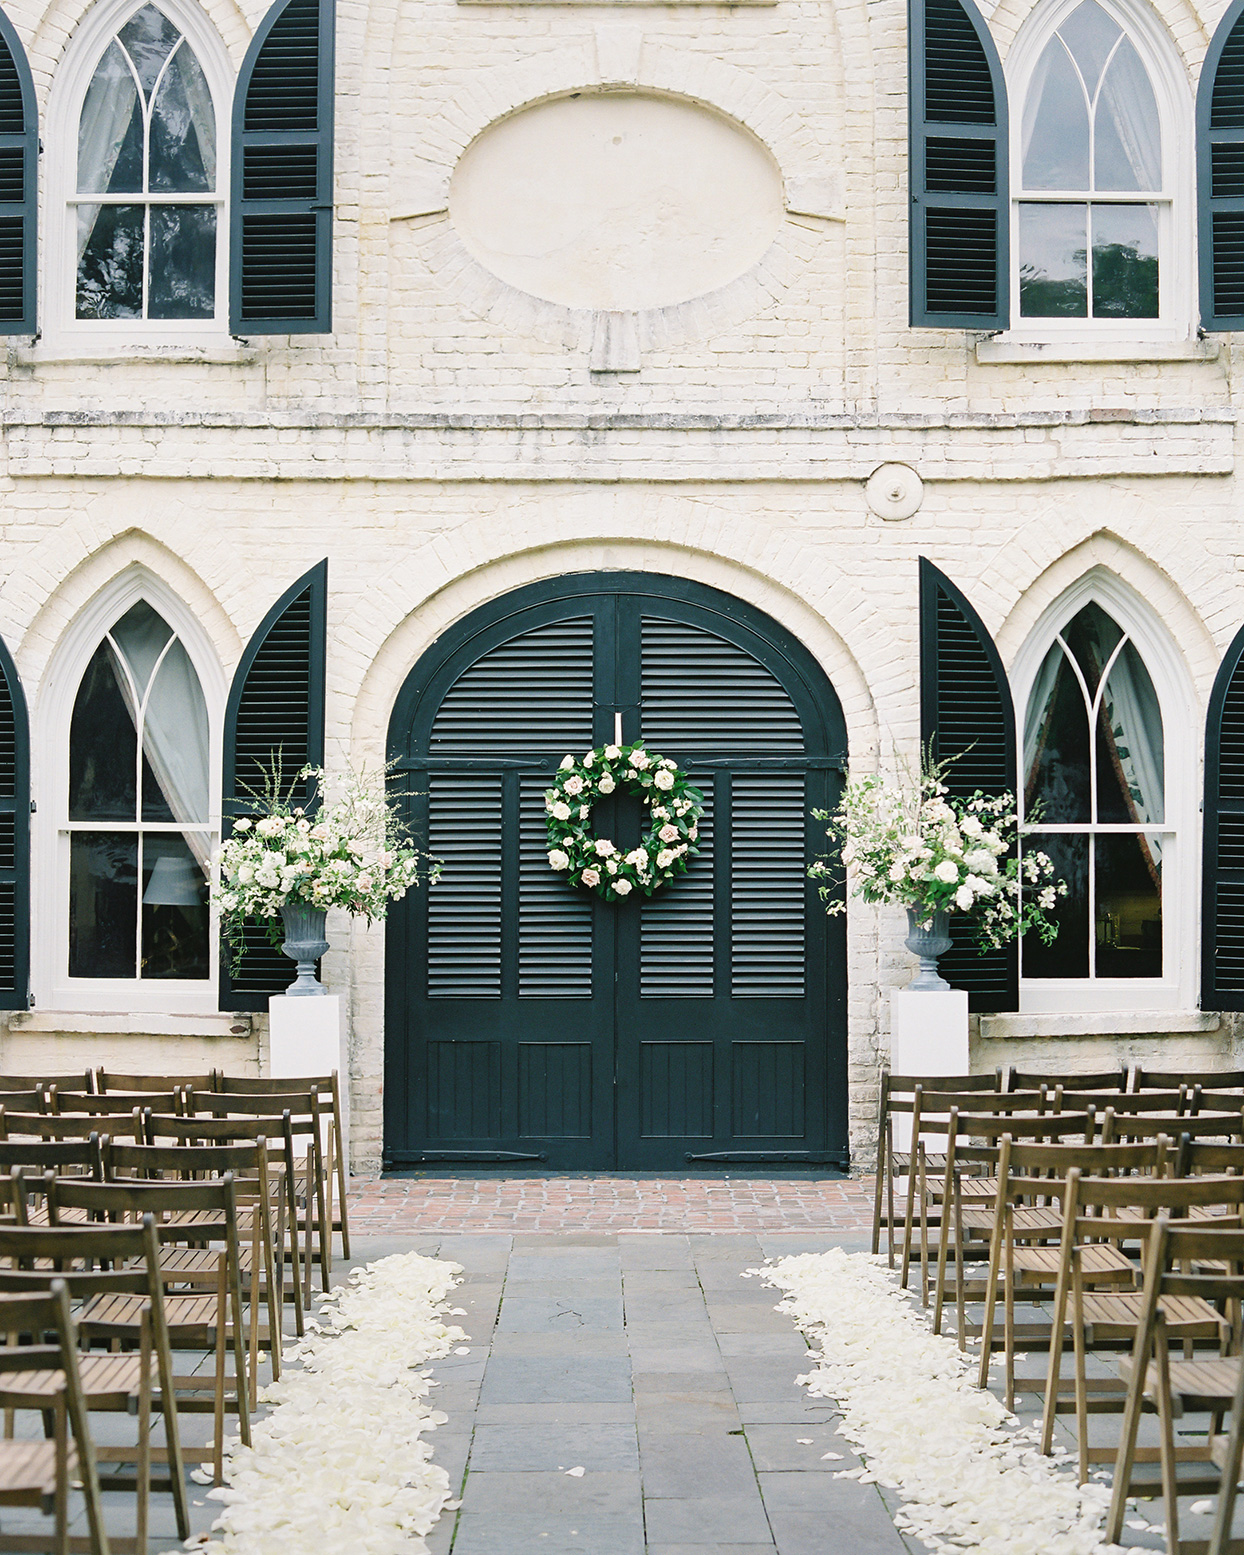 paula terence wedding ceremony location black doors with wreath